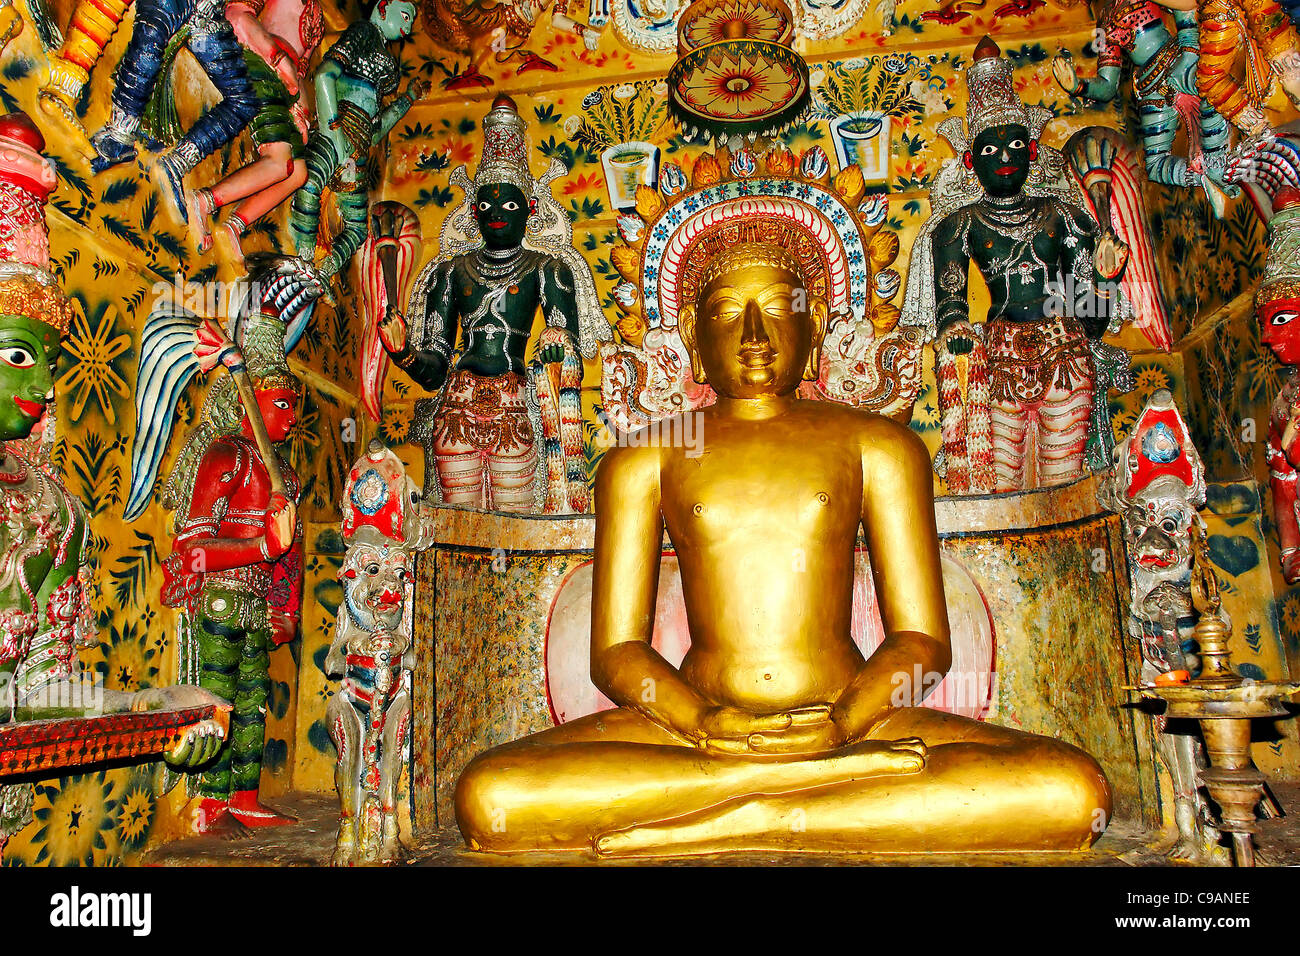 Golden Buddha Colorful Deity Deities Temple India Indian religion traditional - Stock Image